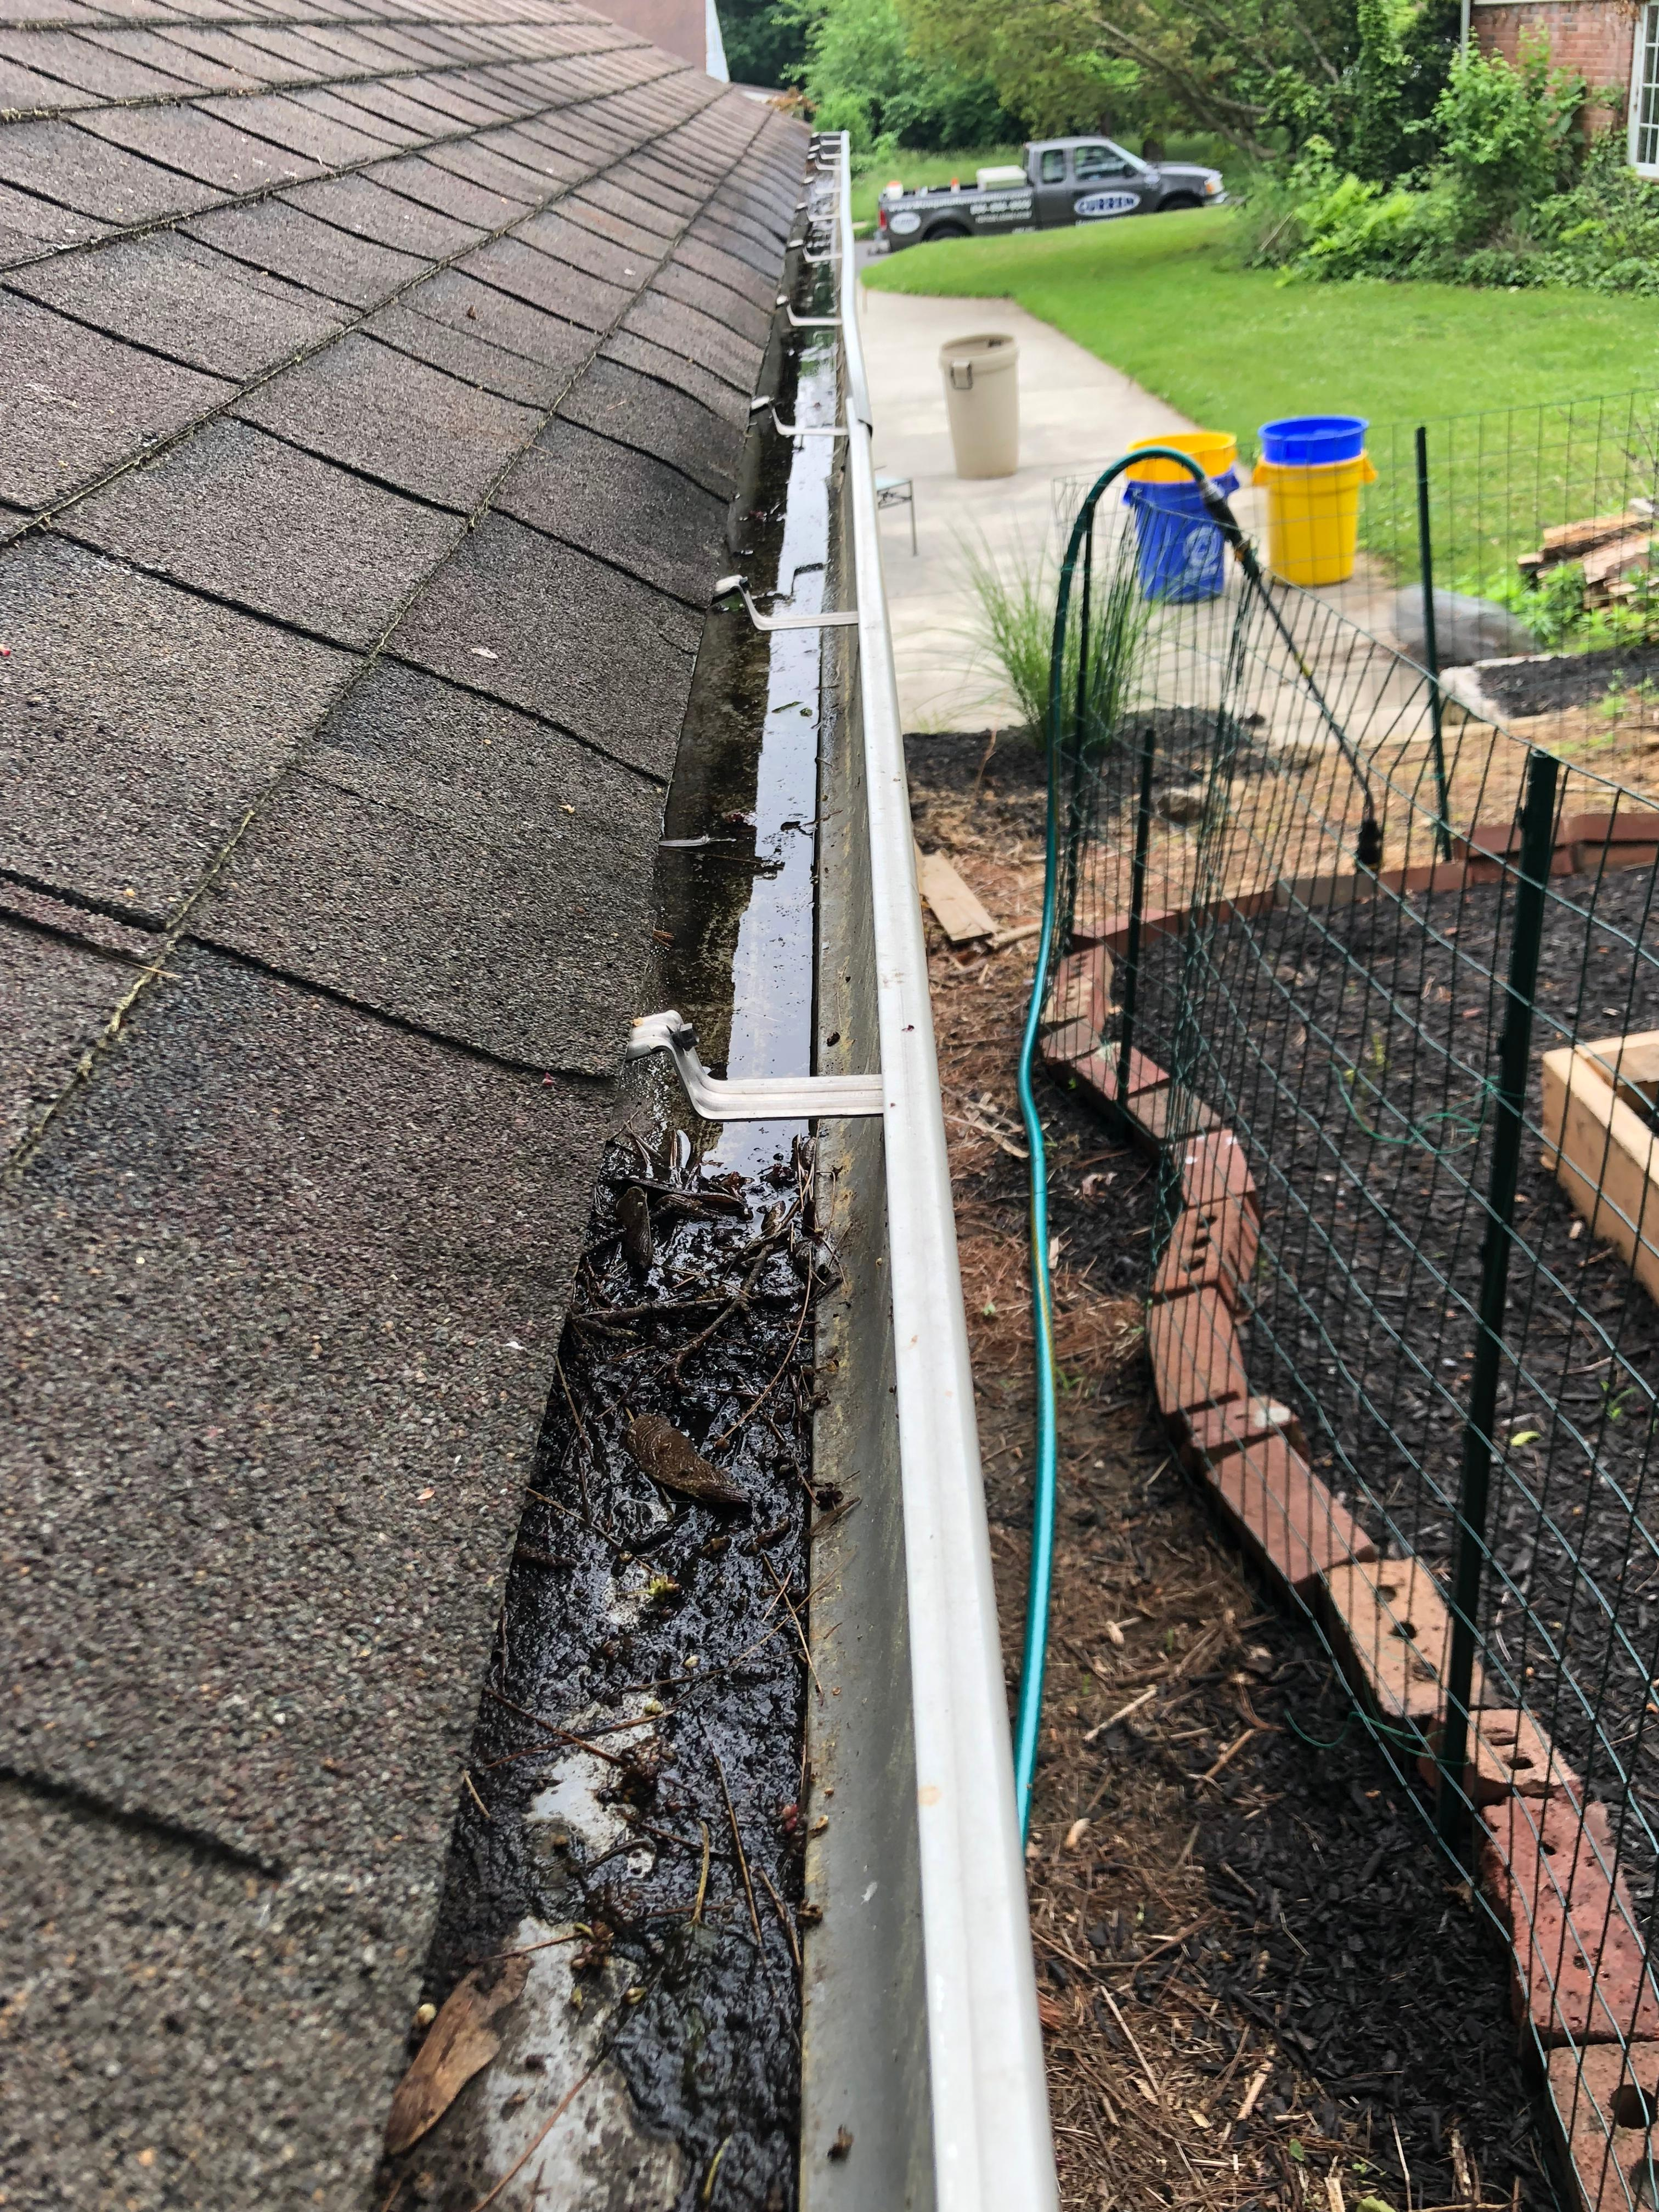 Gutters are popular breeding areas for mosquitoes